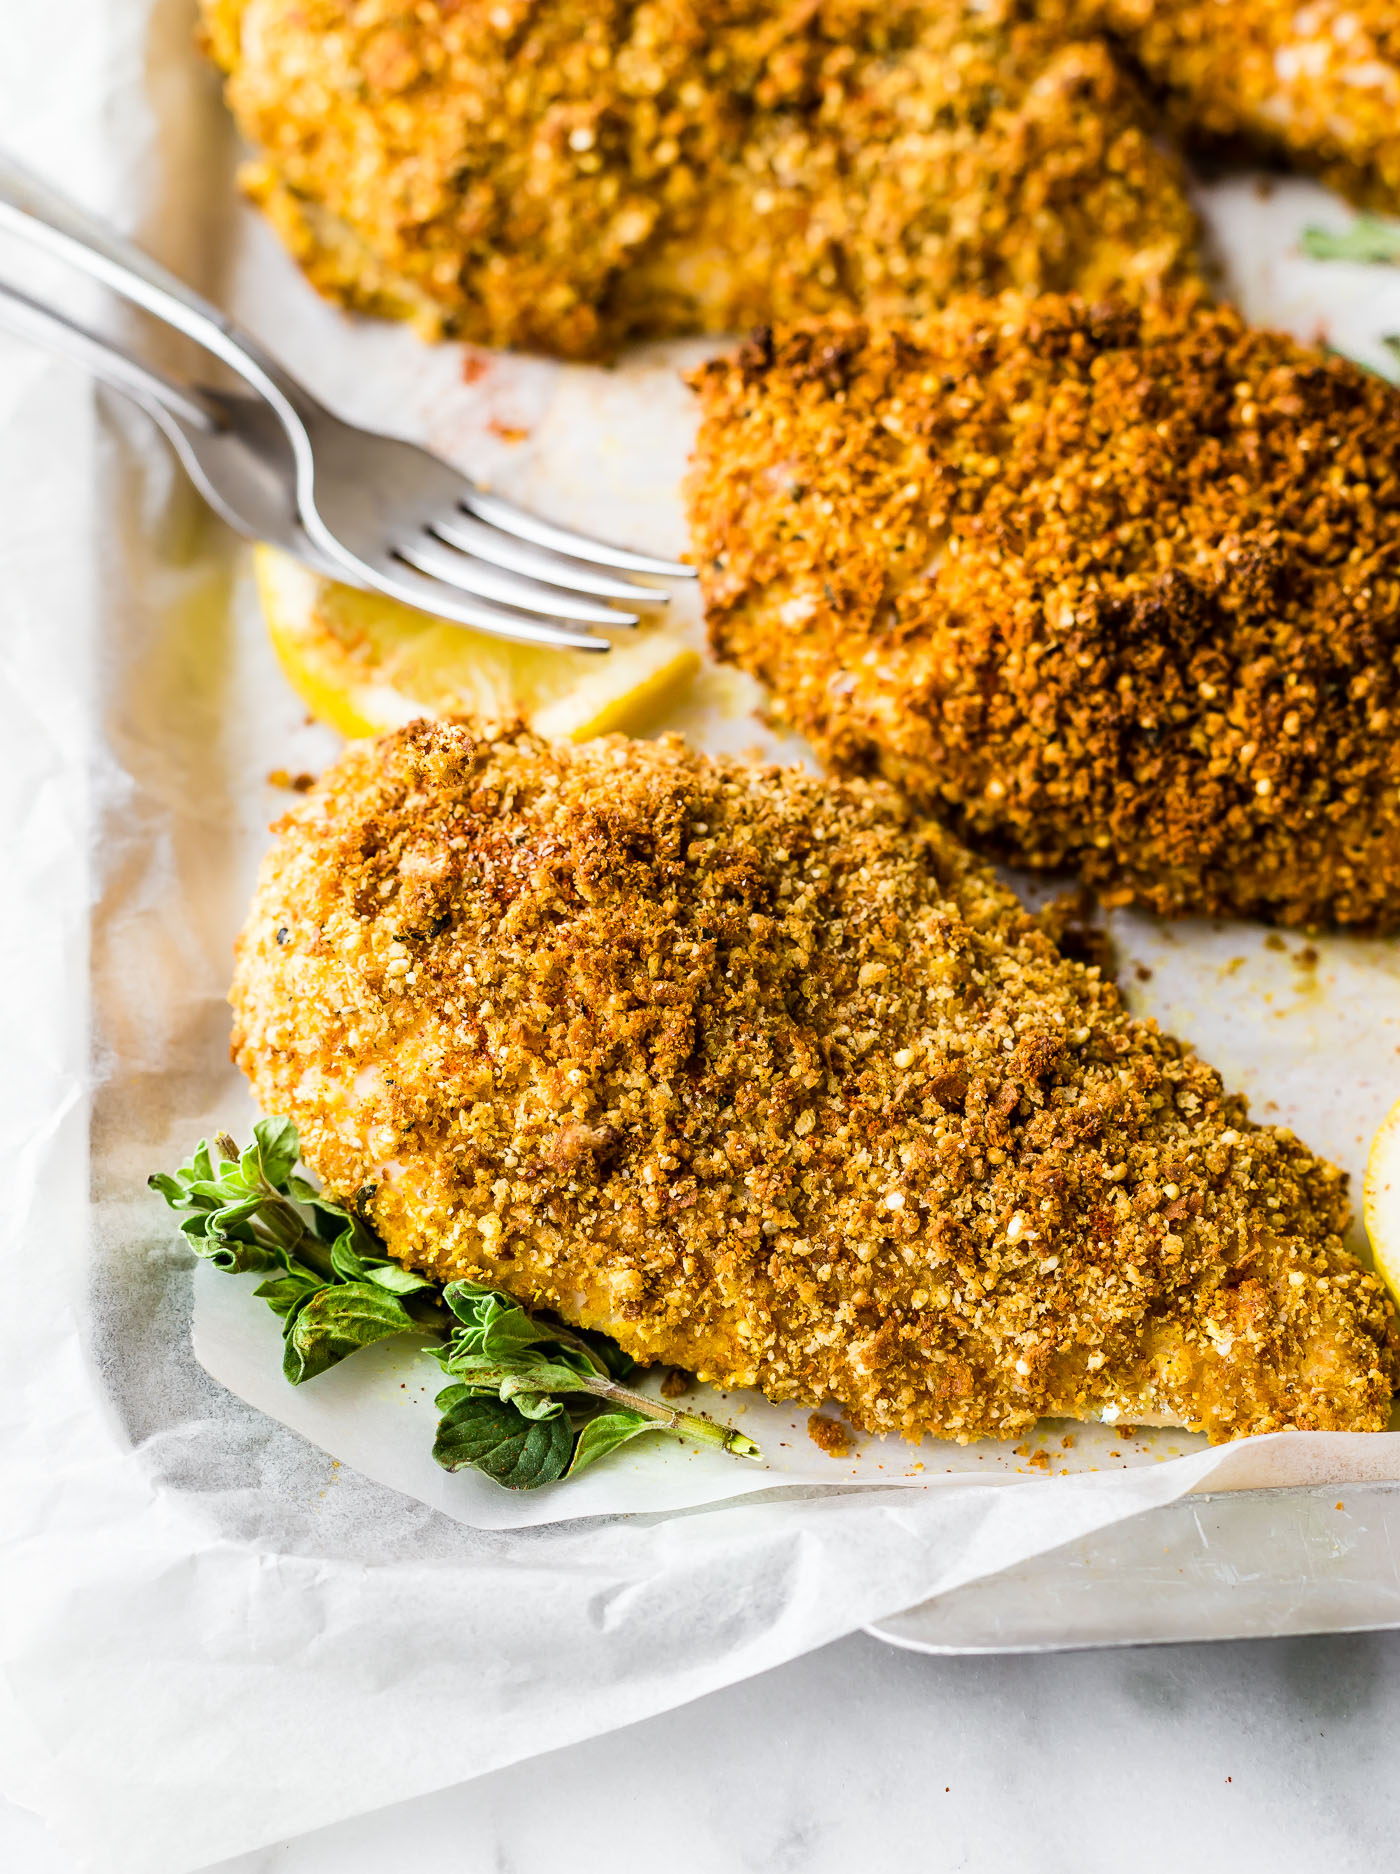 Gluten-free Panko Crusted Paprika Chicken recipe! A baked chicken recipe with gluten-free panko bread crumbs and paprika spices! Easy, quick, one pan meal. Dairy free friendly